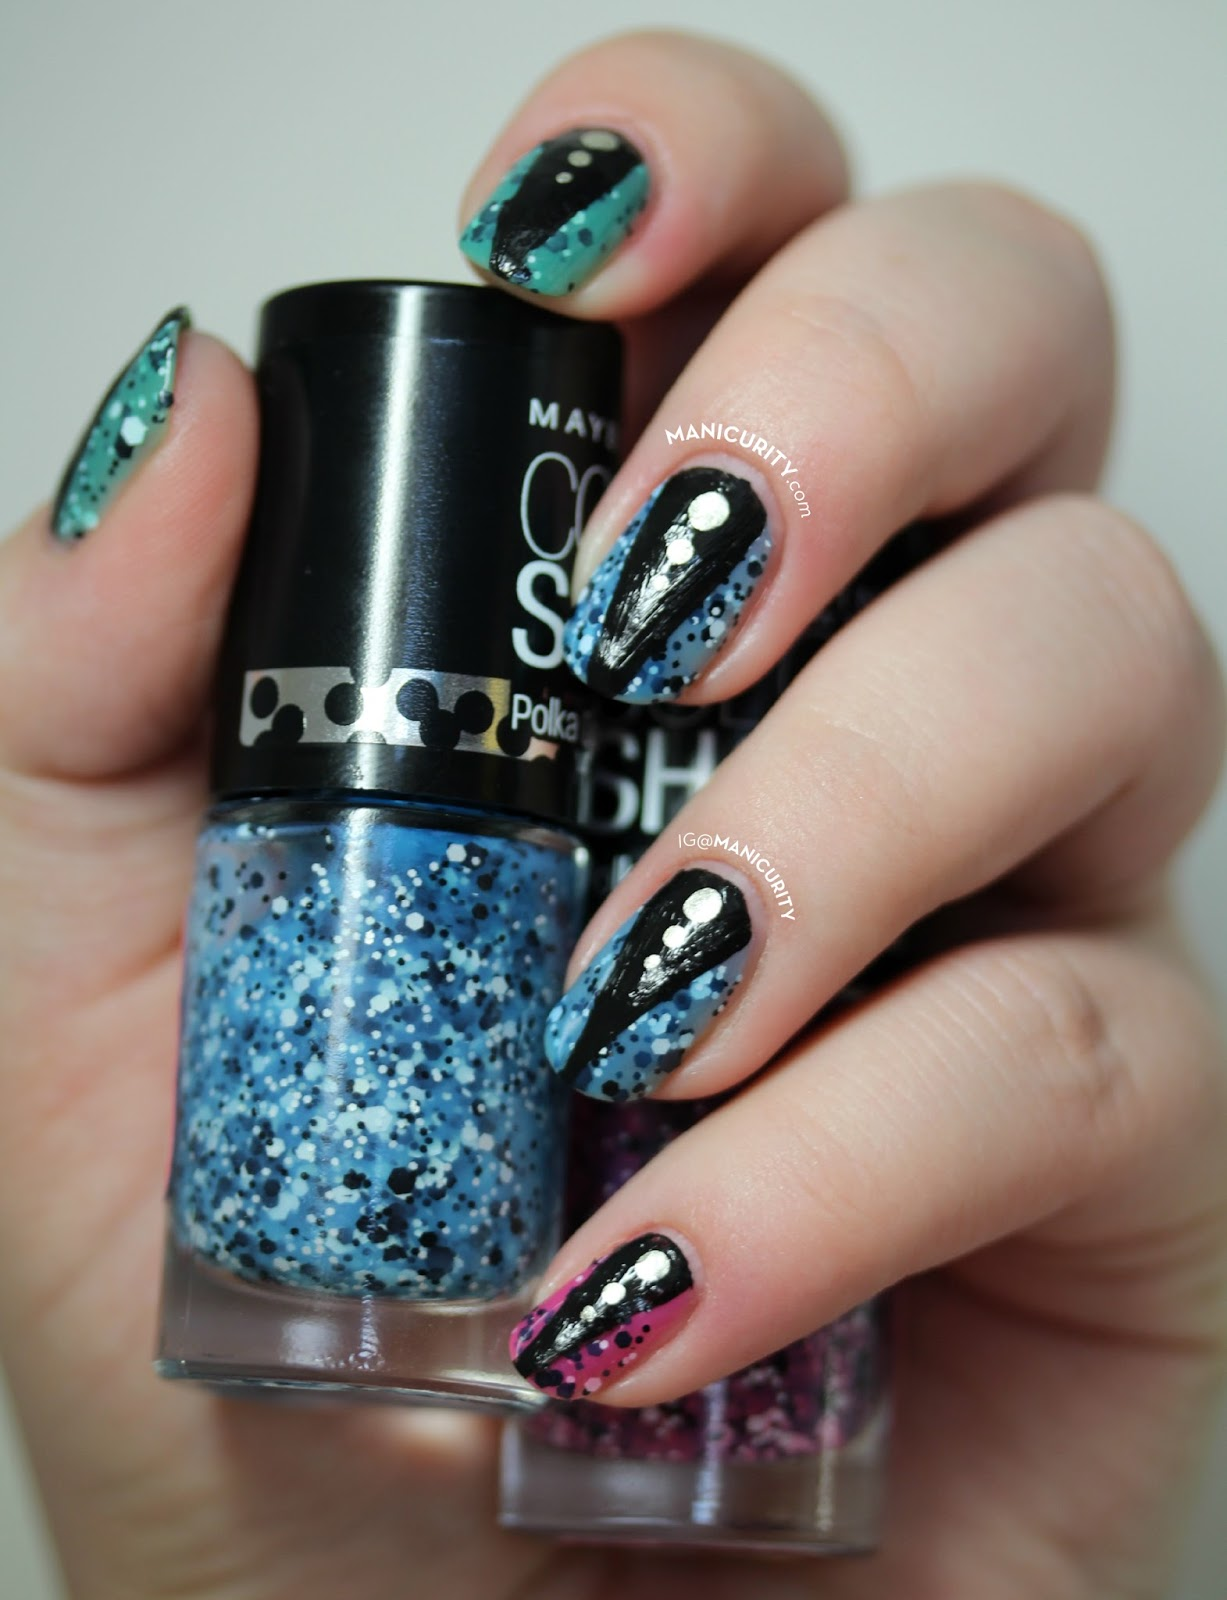 The Digit-al Dozen: Maybelline Color Show Polka Dots Dressed Up in Leather + Studs Nails - triangle half moon nail art | Manicurity